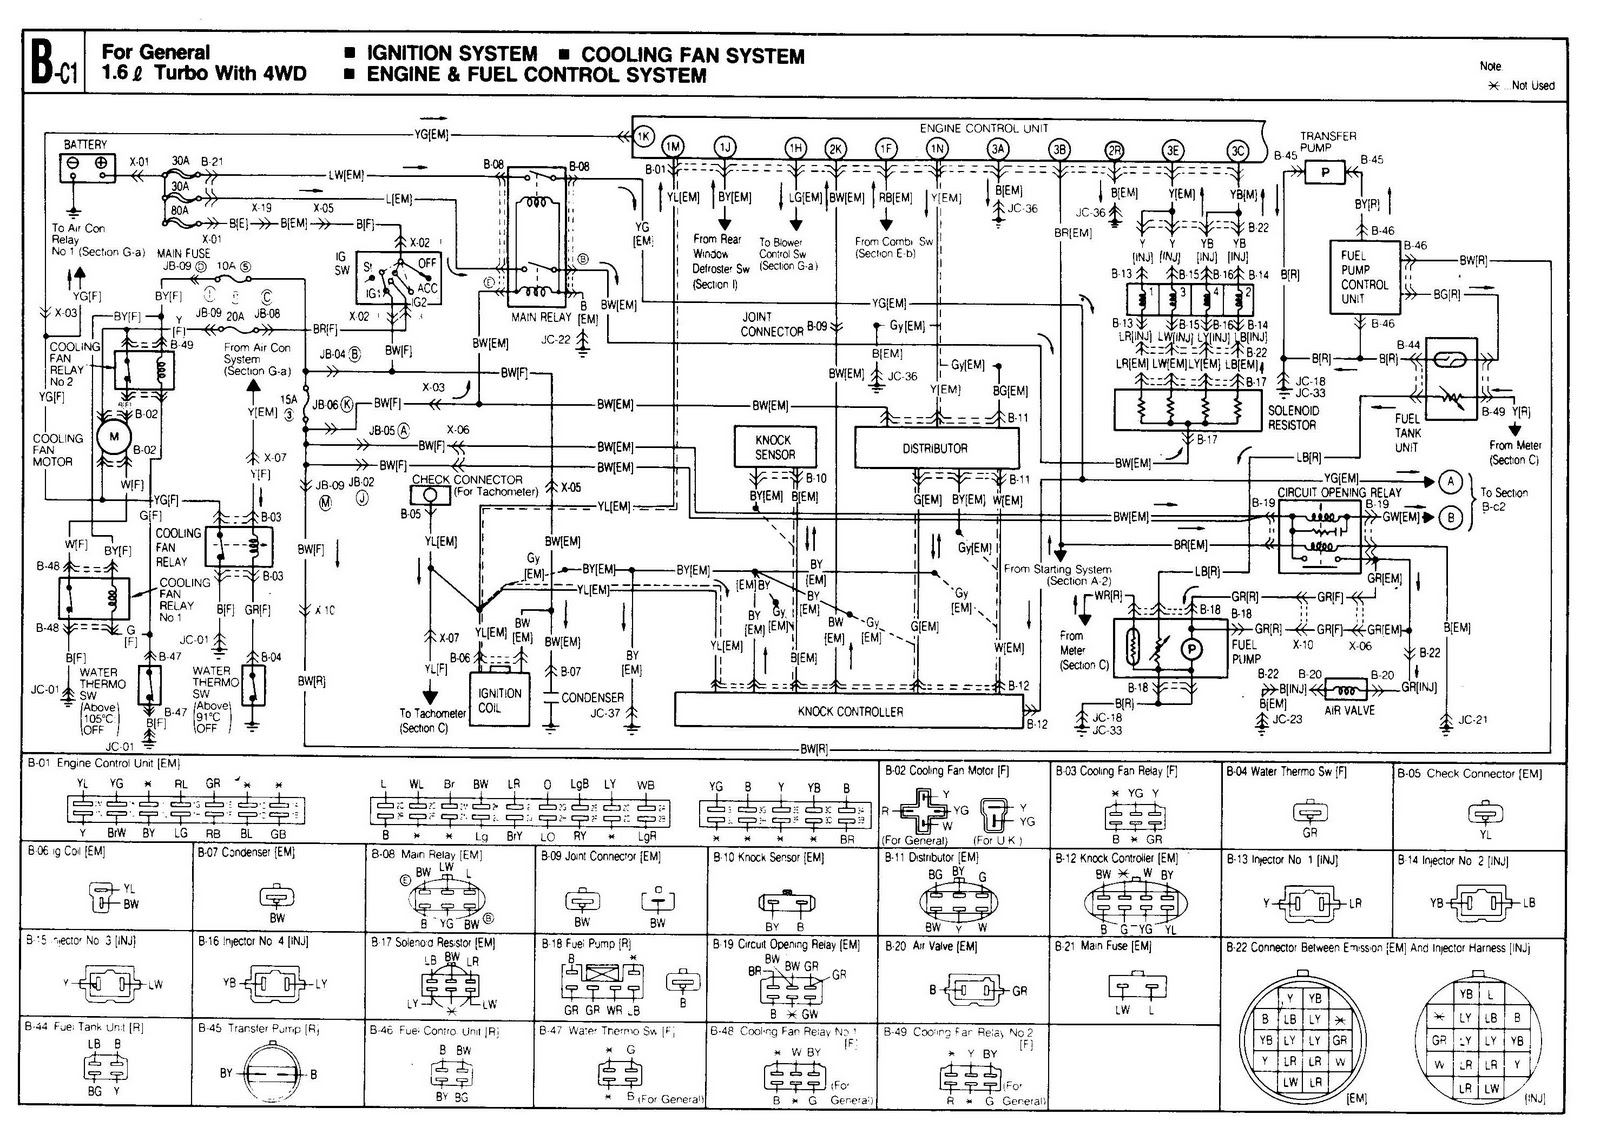 1999 Jeep Cherokee Fan Switch 1980 Cj7 Wiring Diagram